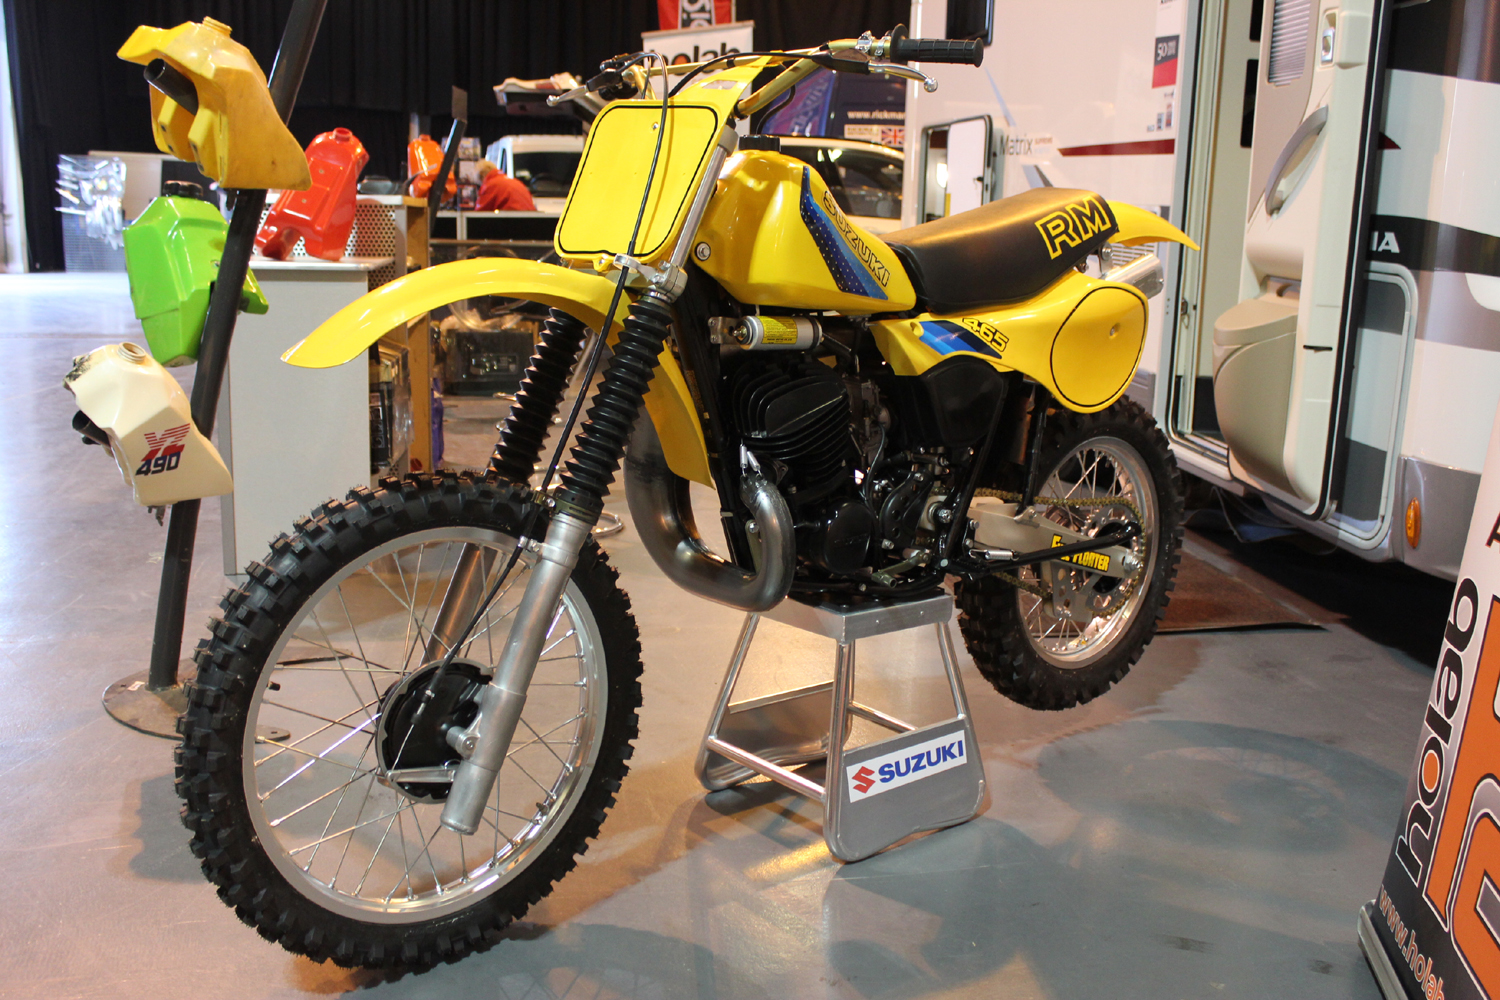 classicdirtbikerider.com-photo by Mr J-2015 Telford classic dirt bike show-SUZUKI RM465-